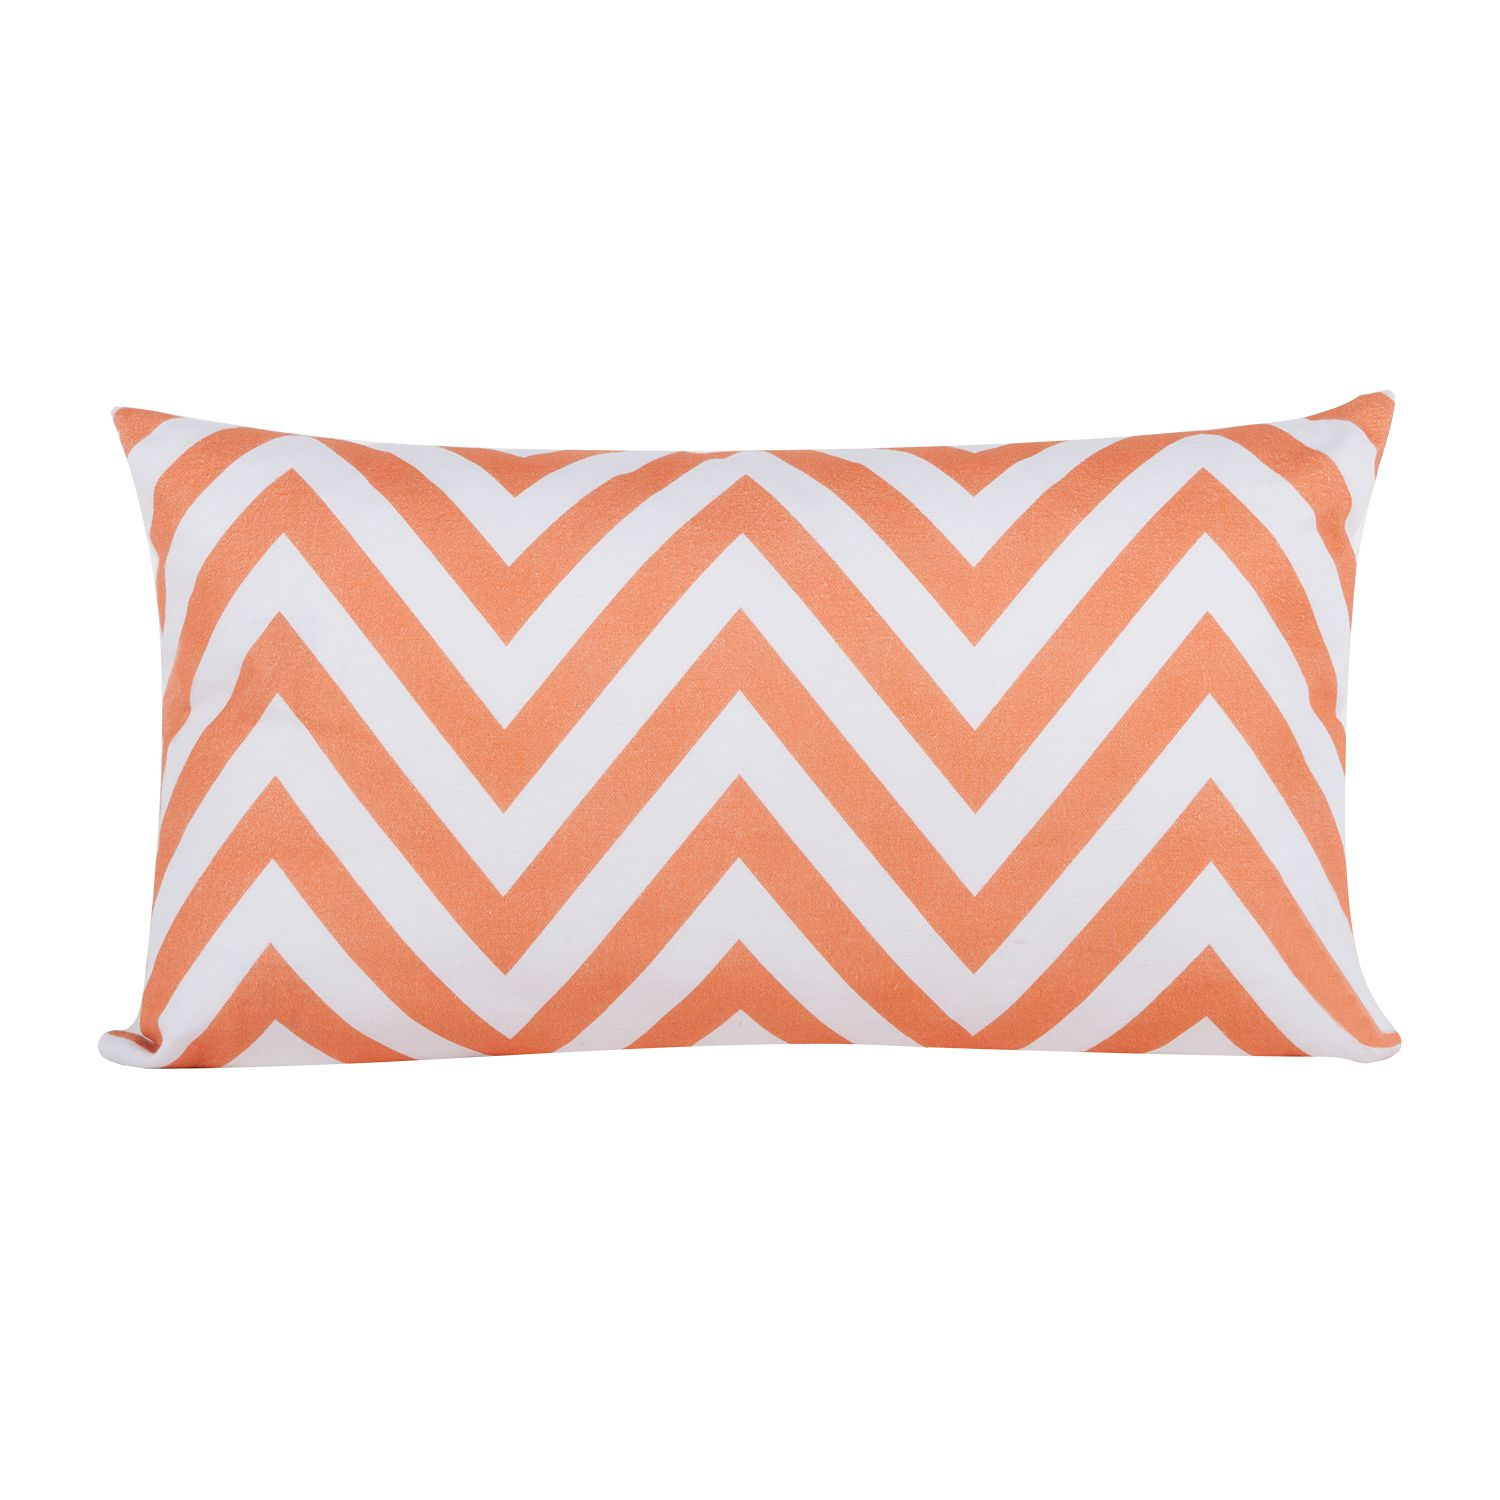 Kussensloop Chevron Love - zwart - Oranje/wit, Morteens